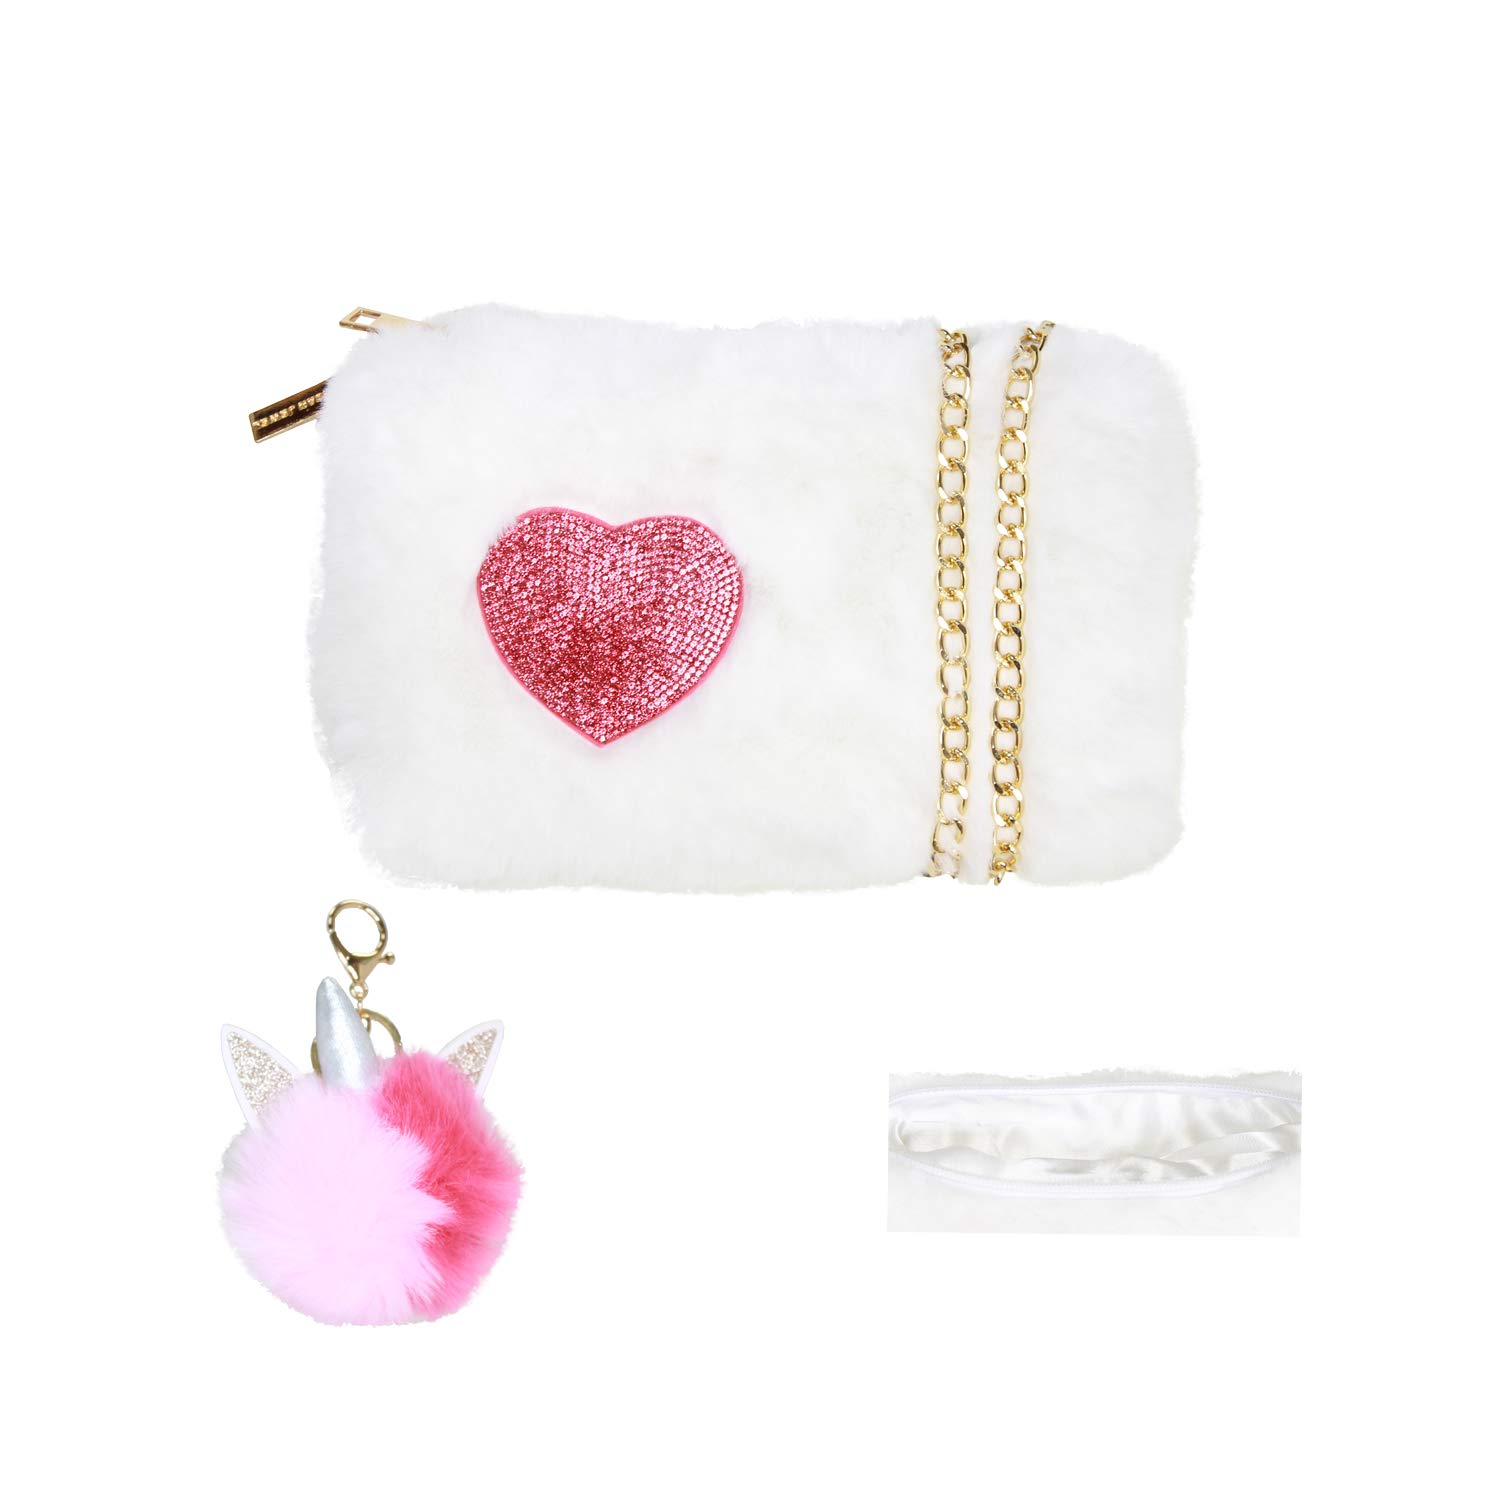 American Jewel Spirit Vibe Faux Furry Purse with Cross Body Chain and Pom Pom Keychain - White with Red Heart